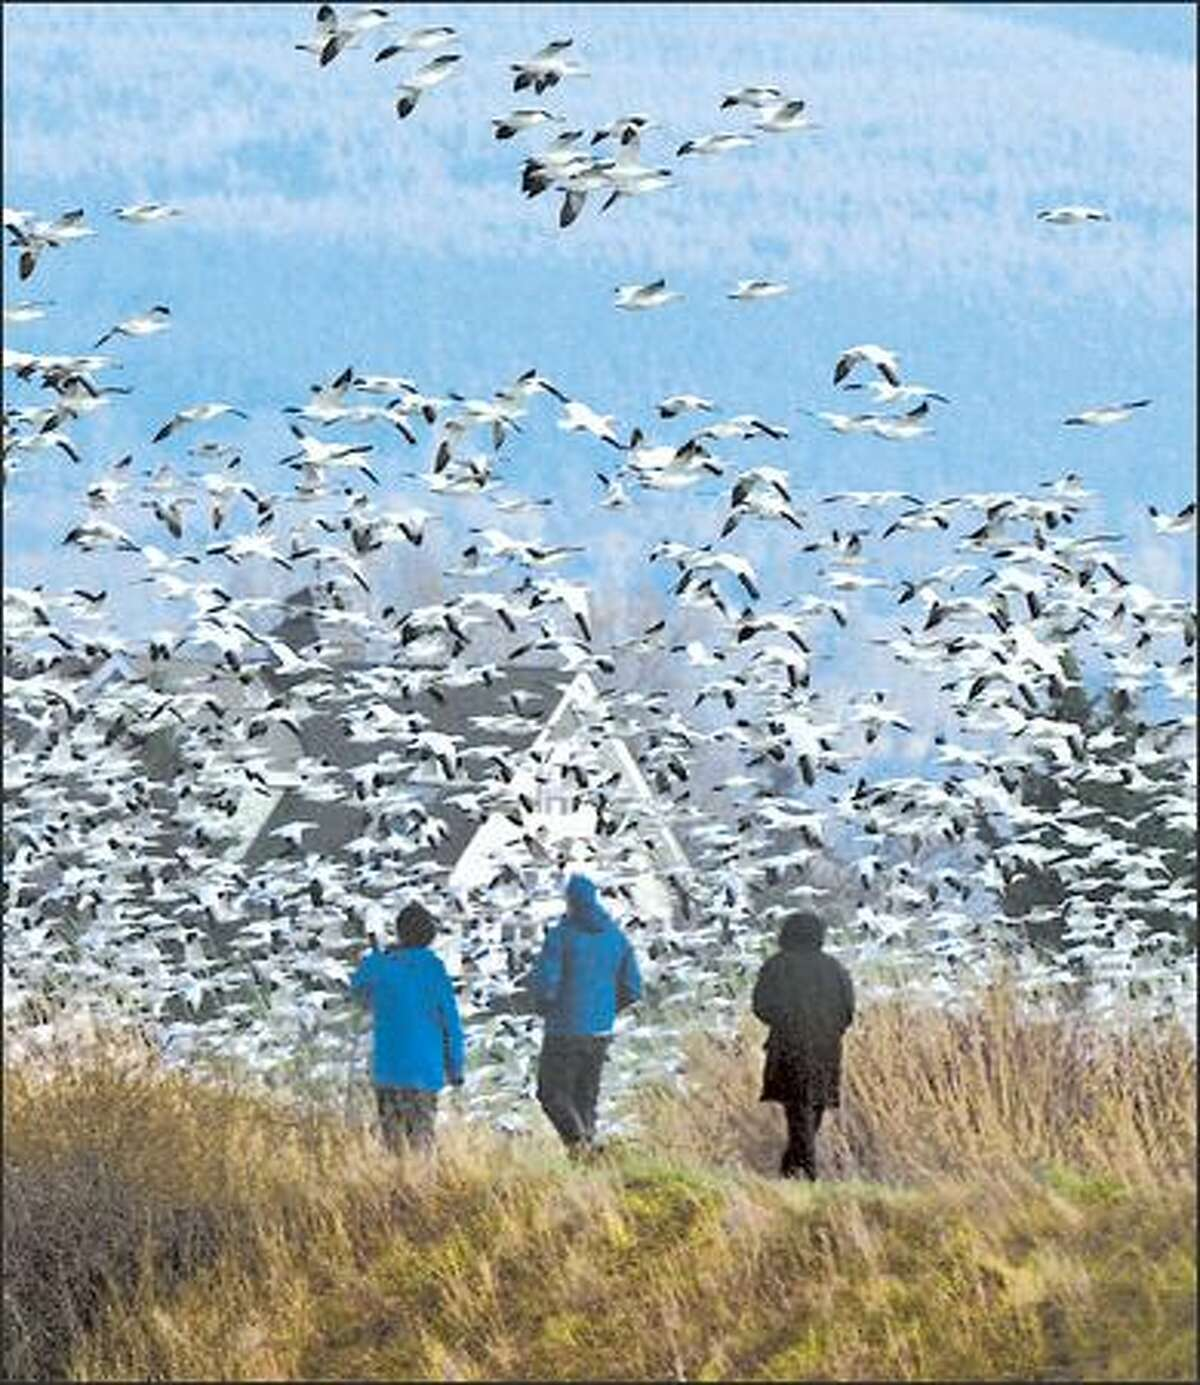 Snow Geese take flight from a fox in front of birdwatchers on Fir Island.